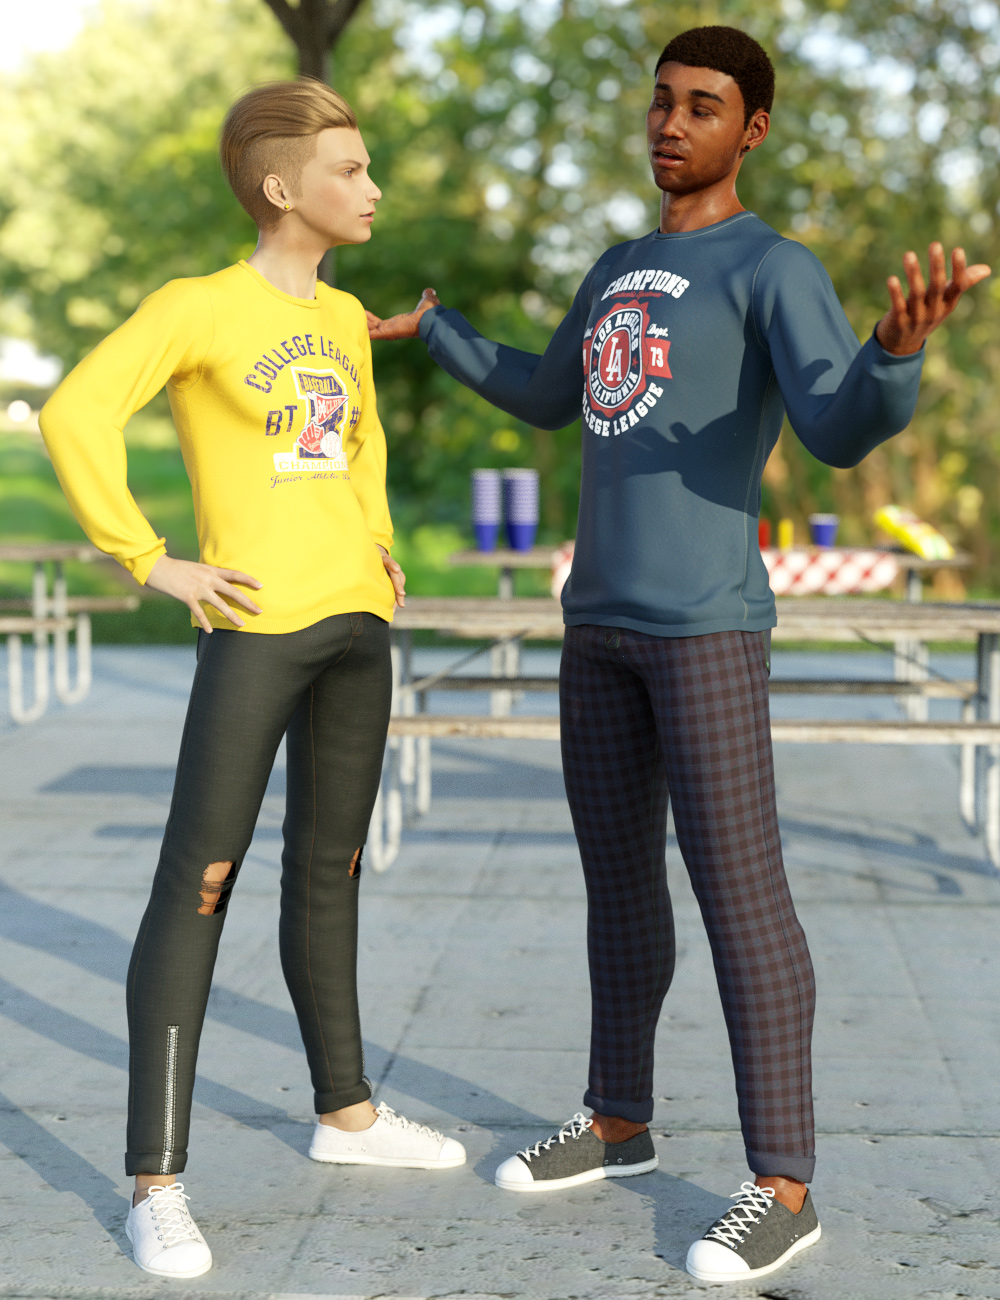 dForce Back To Class Outfit Textures by: Moonscape GraphicsSade, 3D Models by Daz 3D